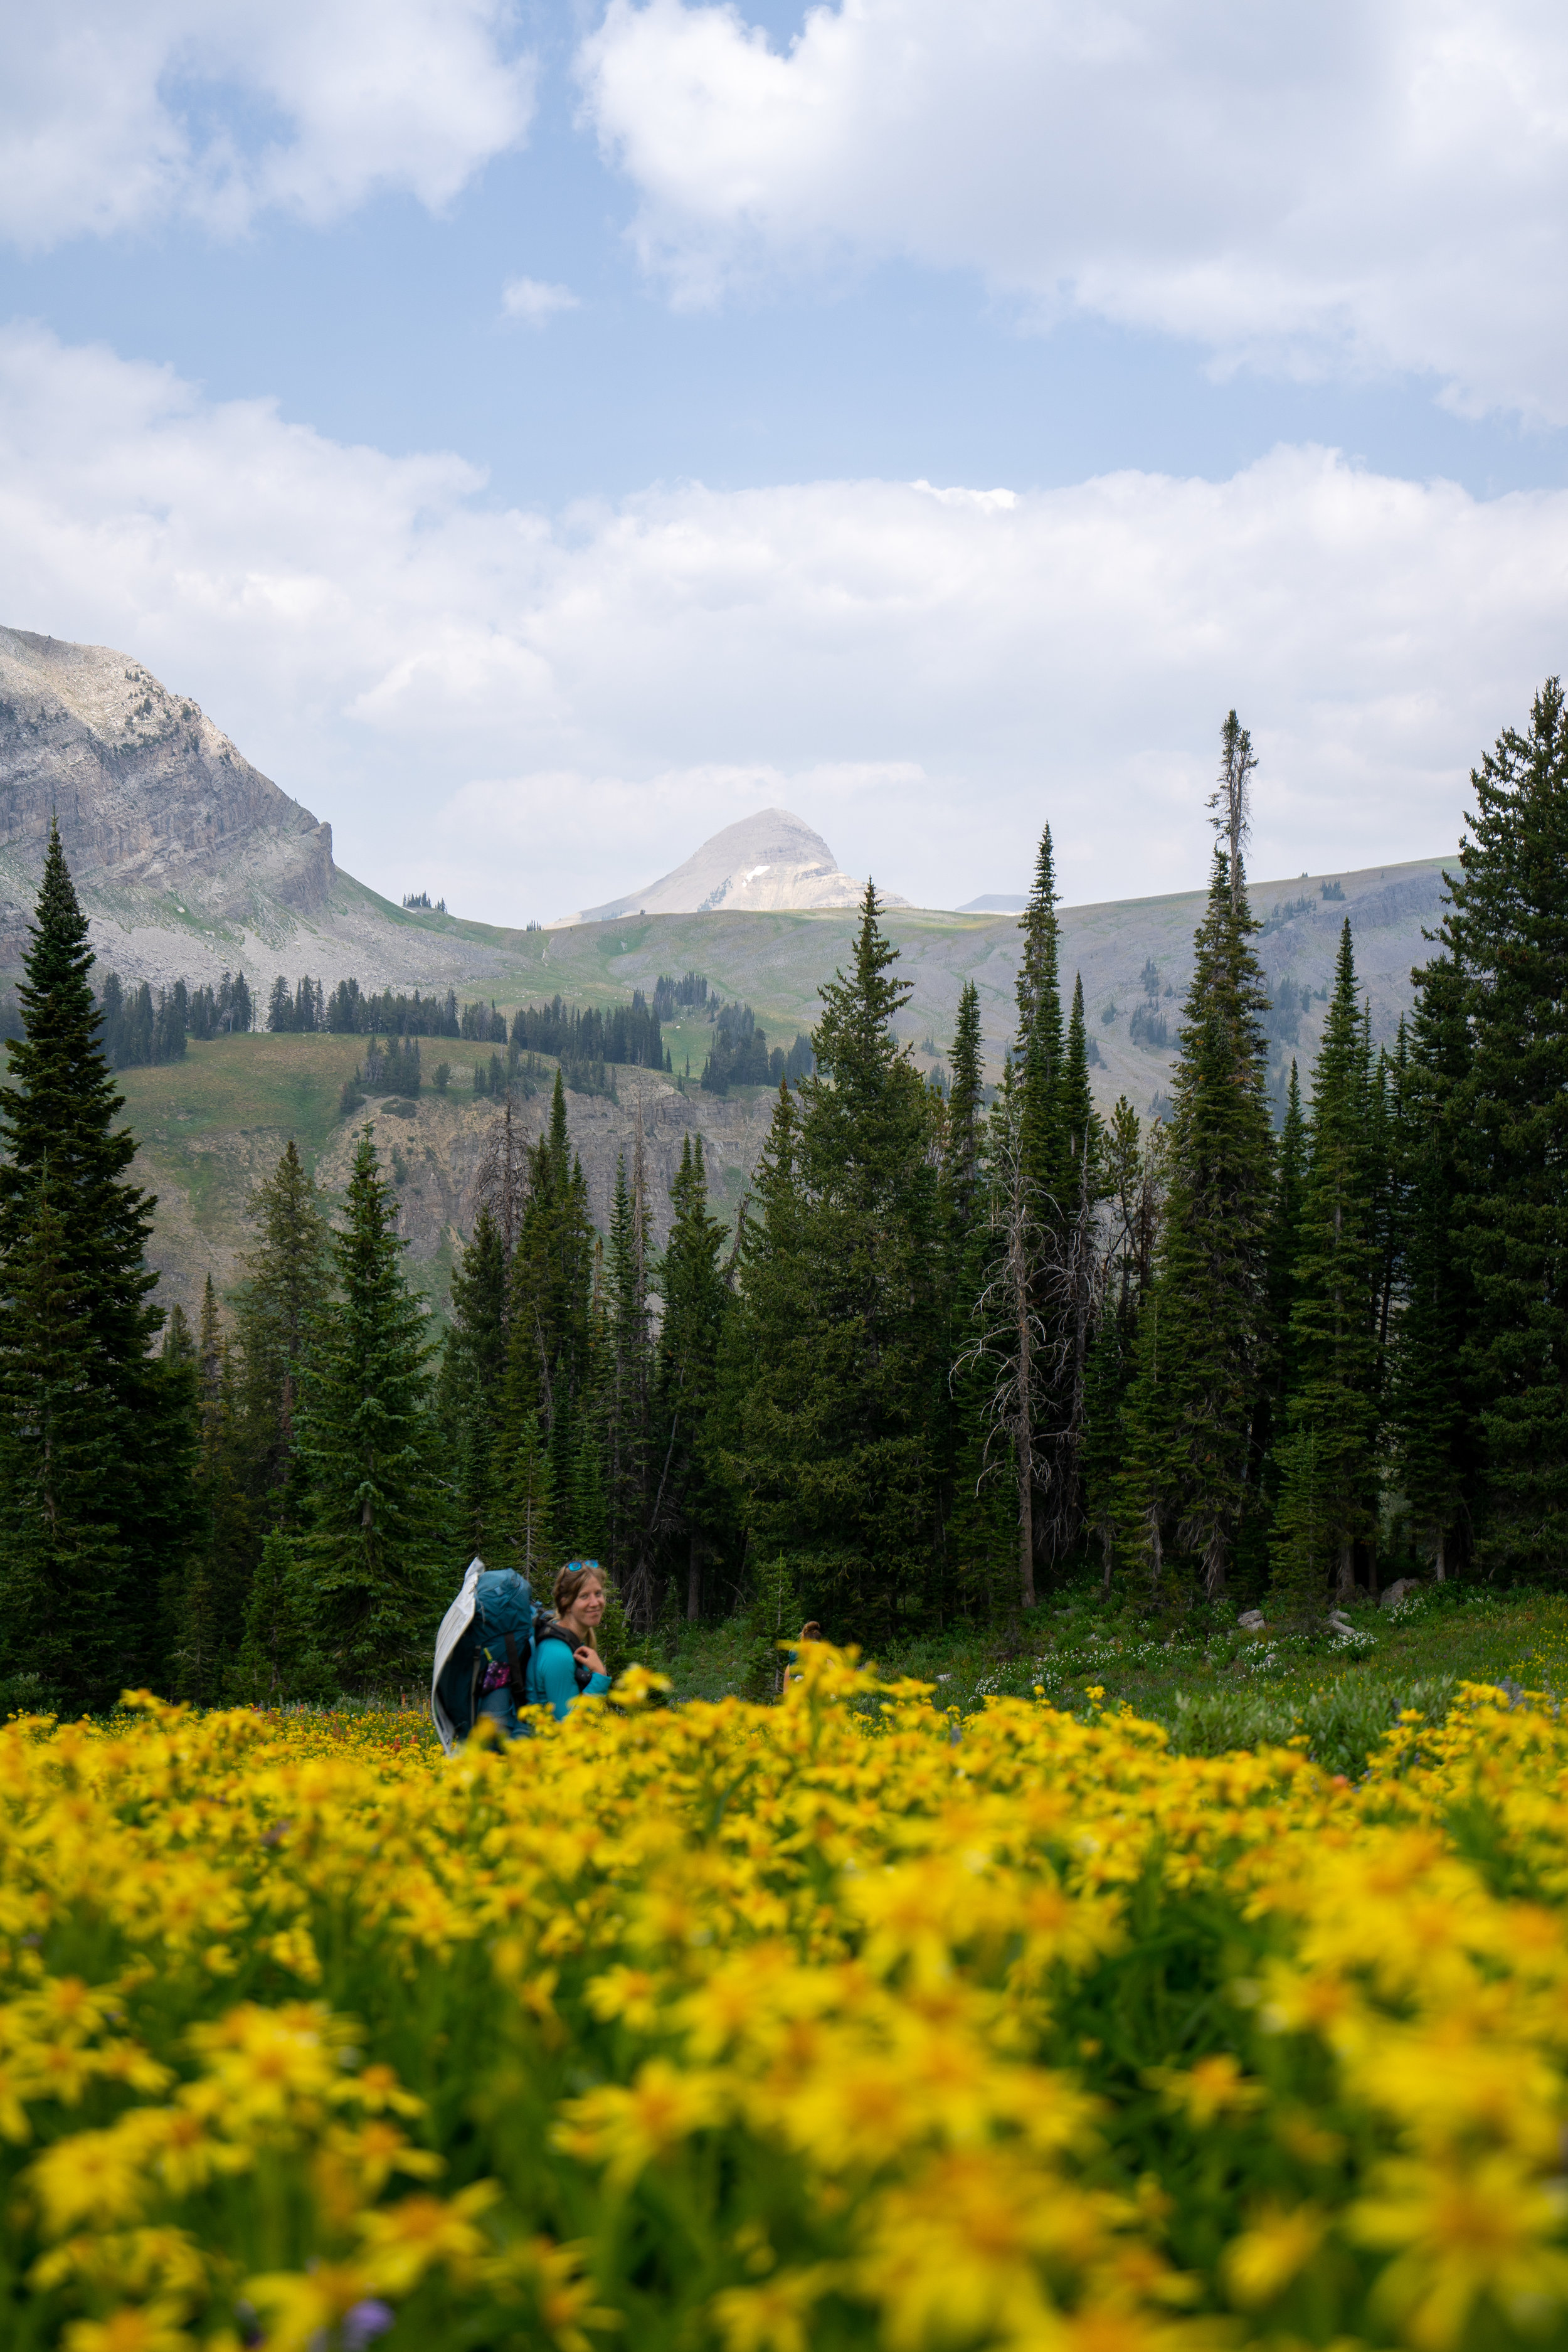 DATE HIKED: 8/19-22TOTAL DISTANCE: 40 milesDIFFICULTY: MODERATELY DIFFICULTREQUIRED PERMIT: YESDOG FRIENDLY: NOLOCATION: GRAND TETON NATIONAL PARKRECREATION PASS: NATIONAL PARK PASS -